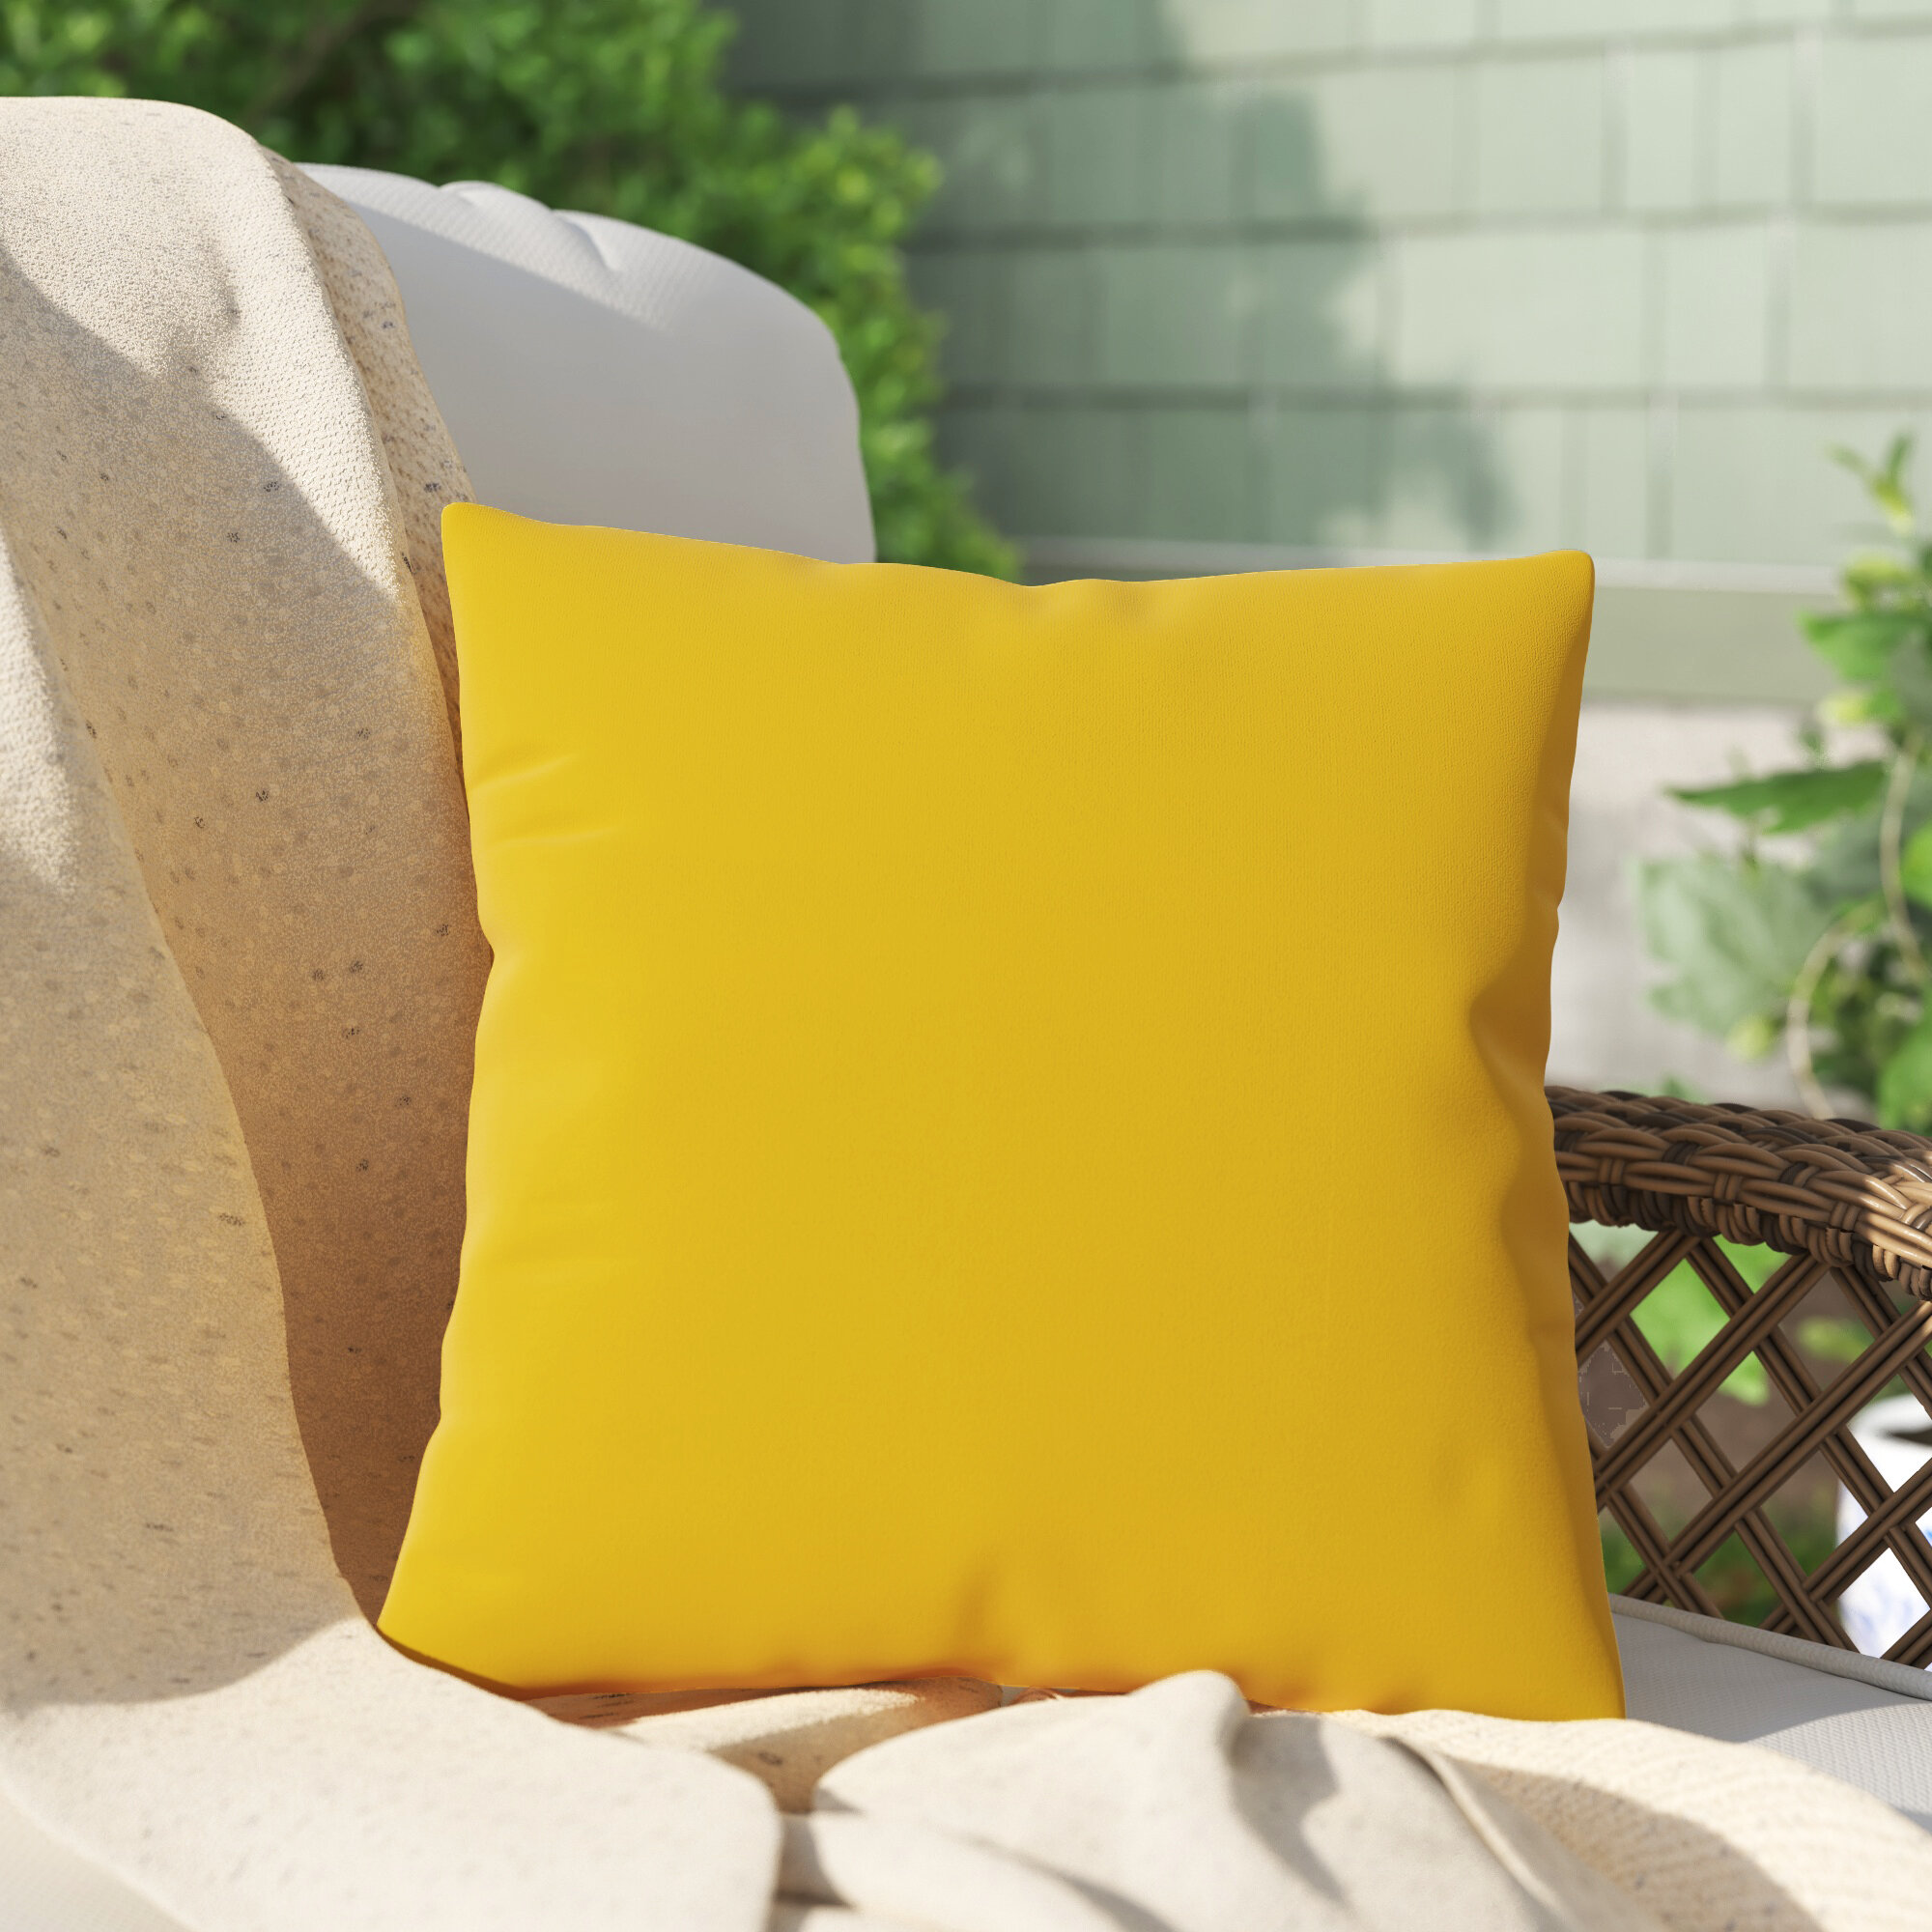 Wayfair Throw Pillows You Ll Love In 2021